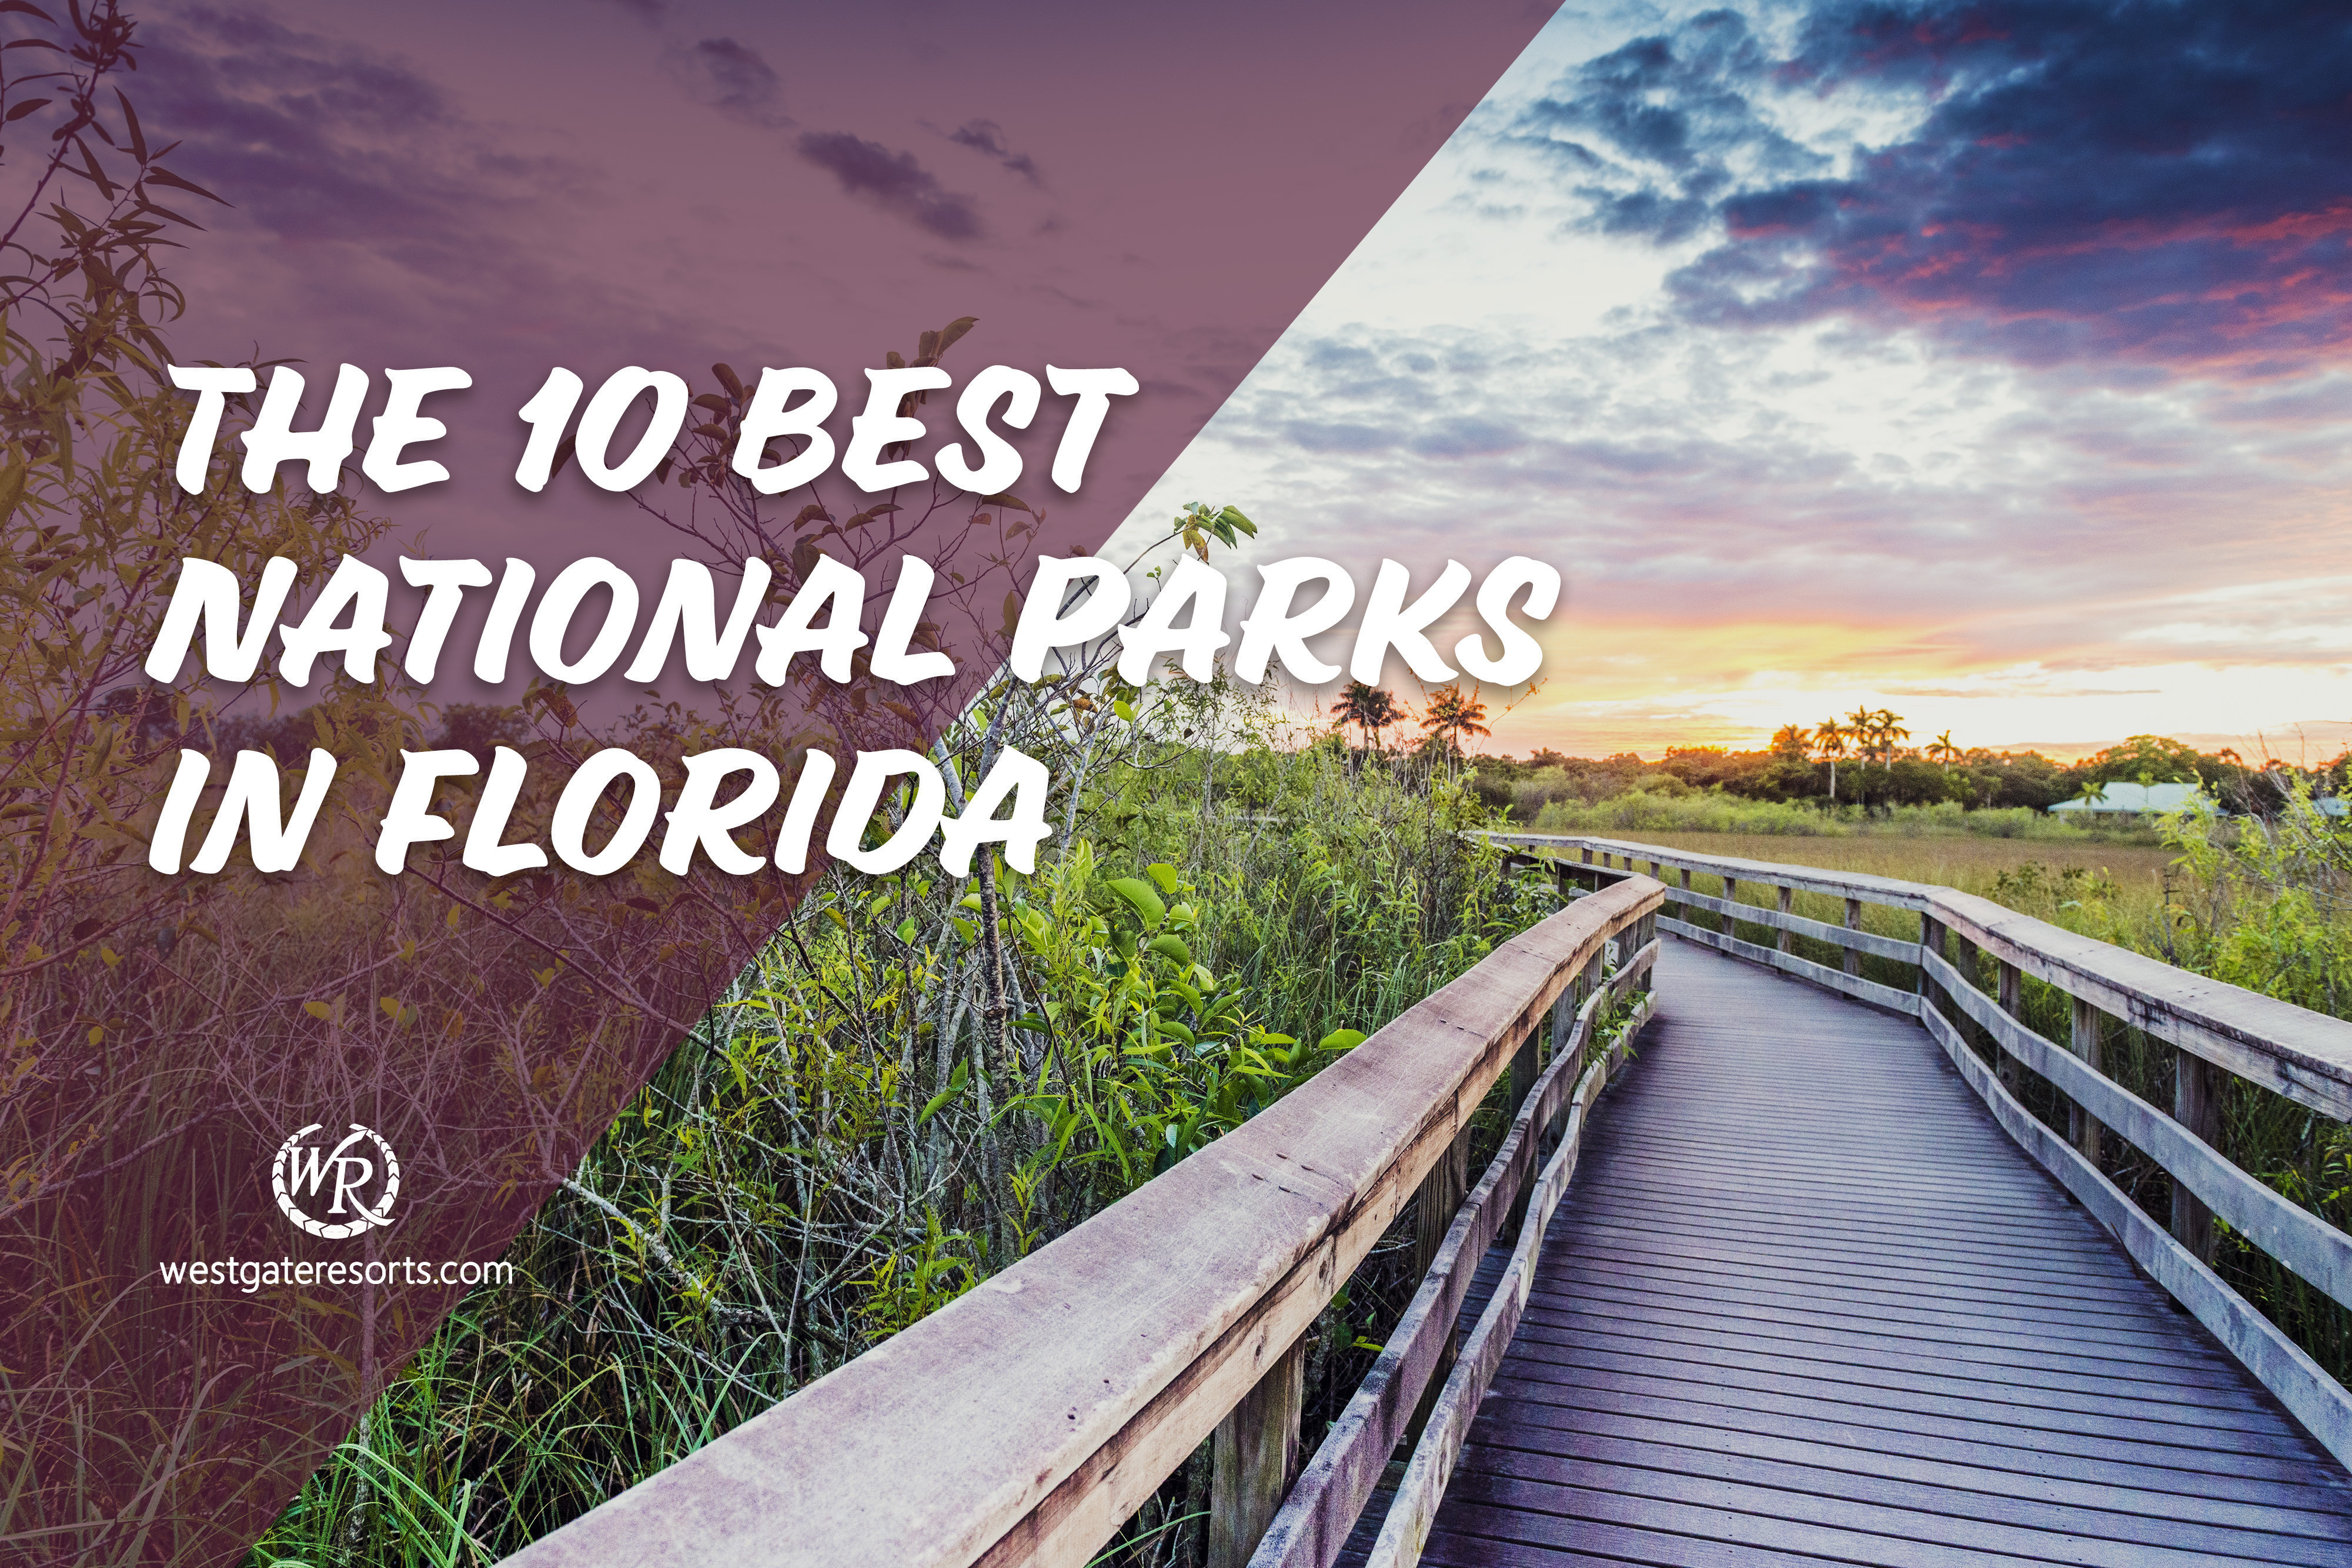 The 10 Best National Parks in Florida